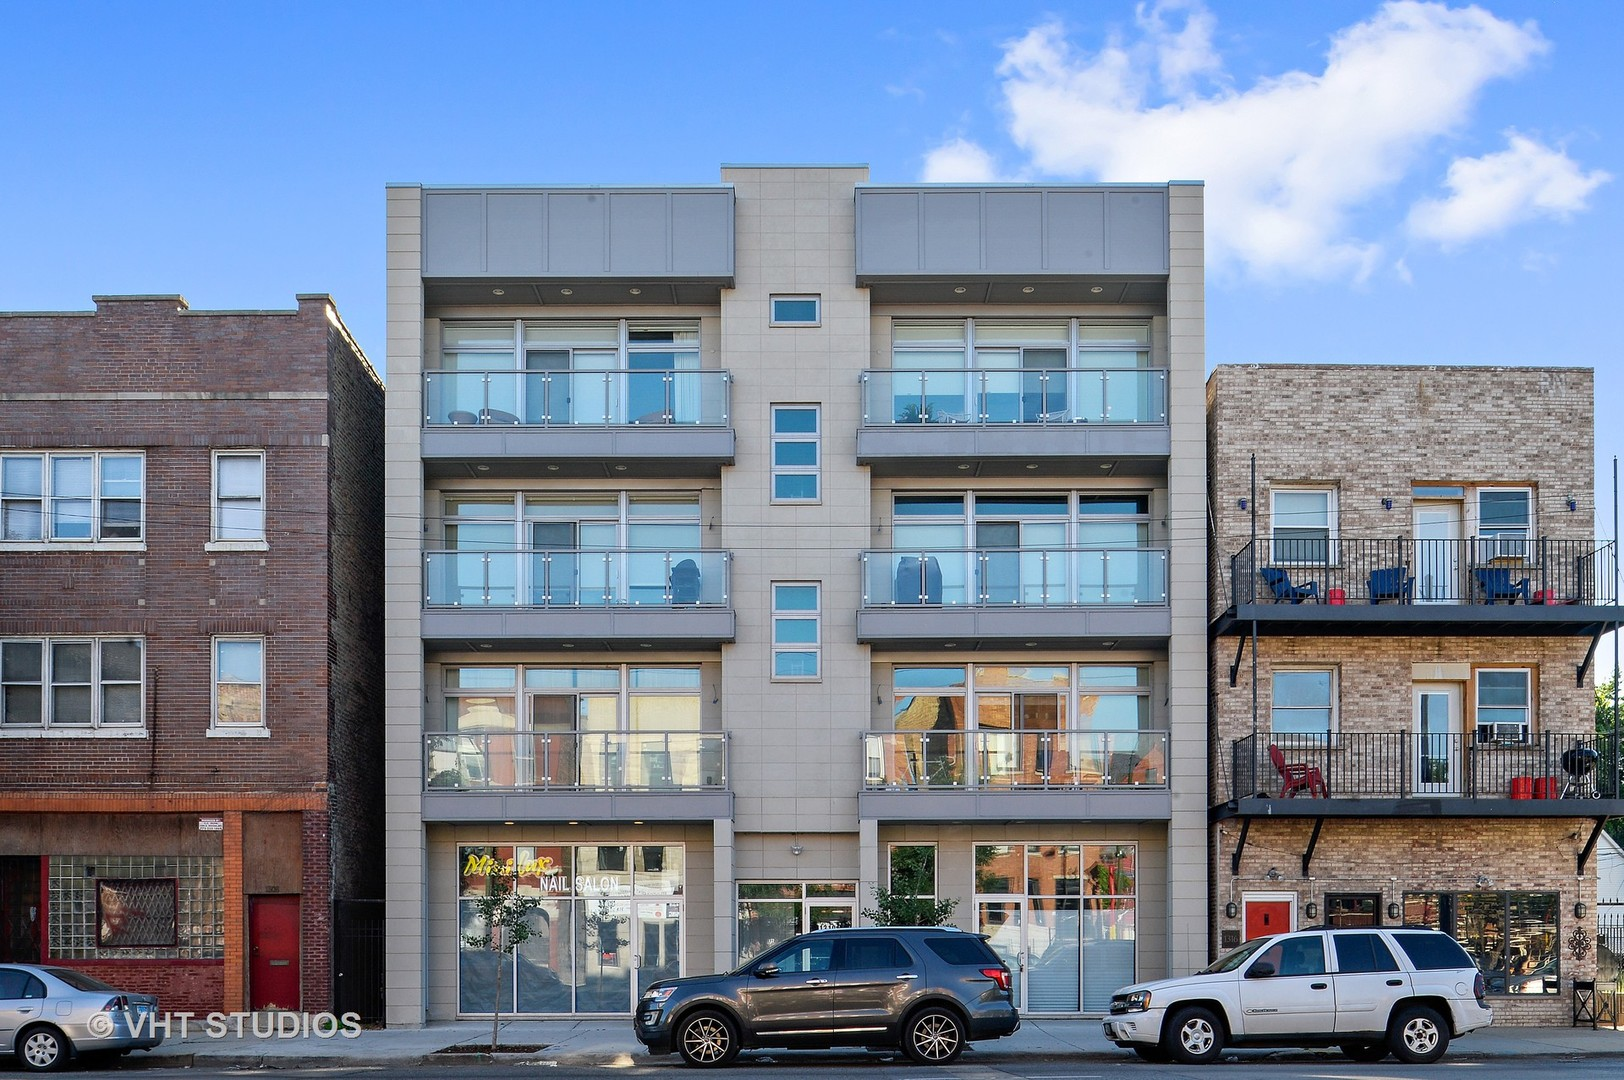 LIKE NEW SUNNY LARGE PENTHOUSE WITH PRIVATE ELEVATOR ACCESS AND TWO CAR GARAGE in a 45' wide new con